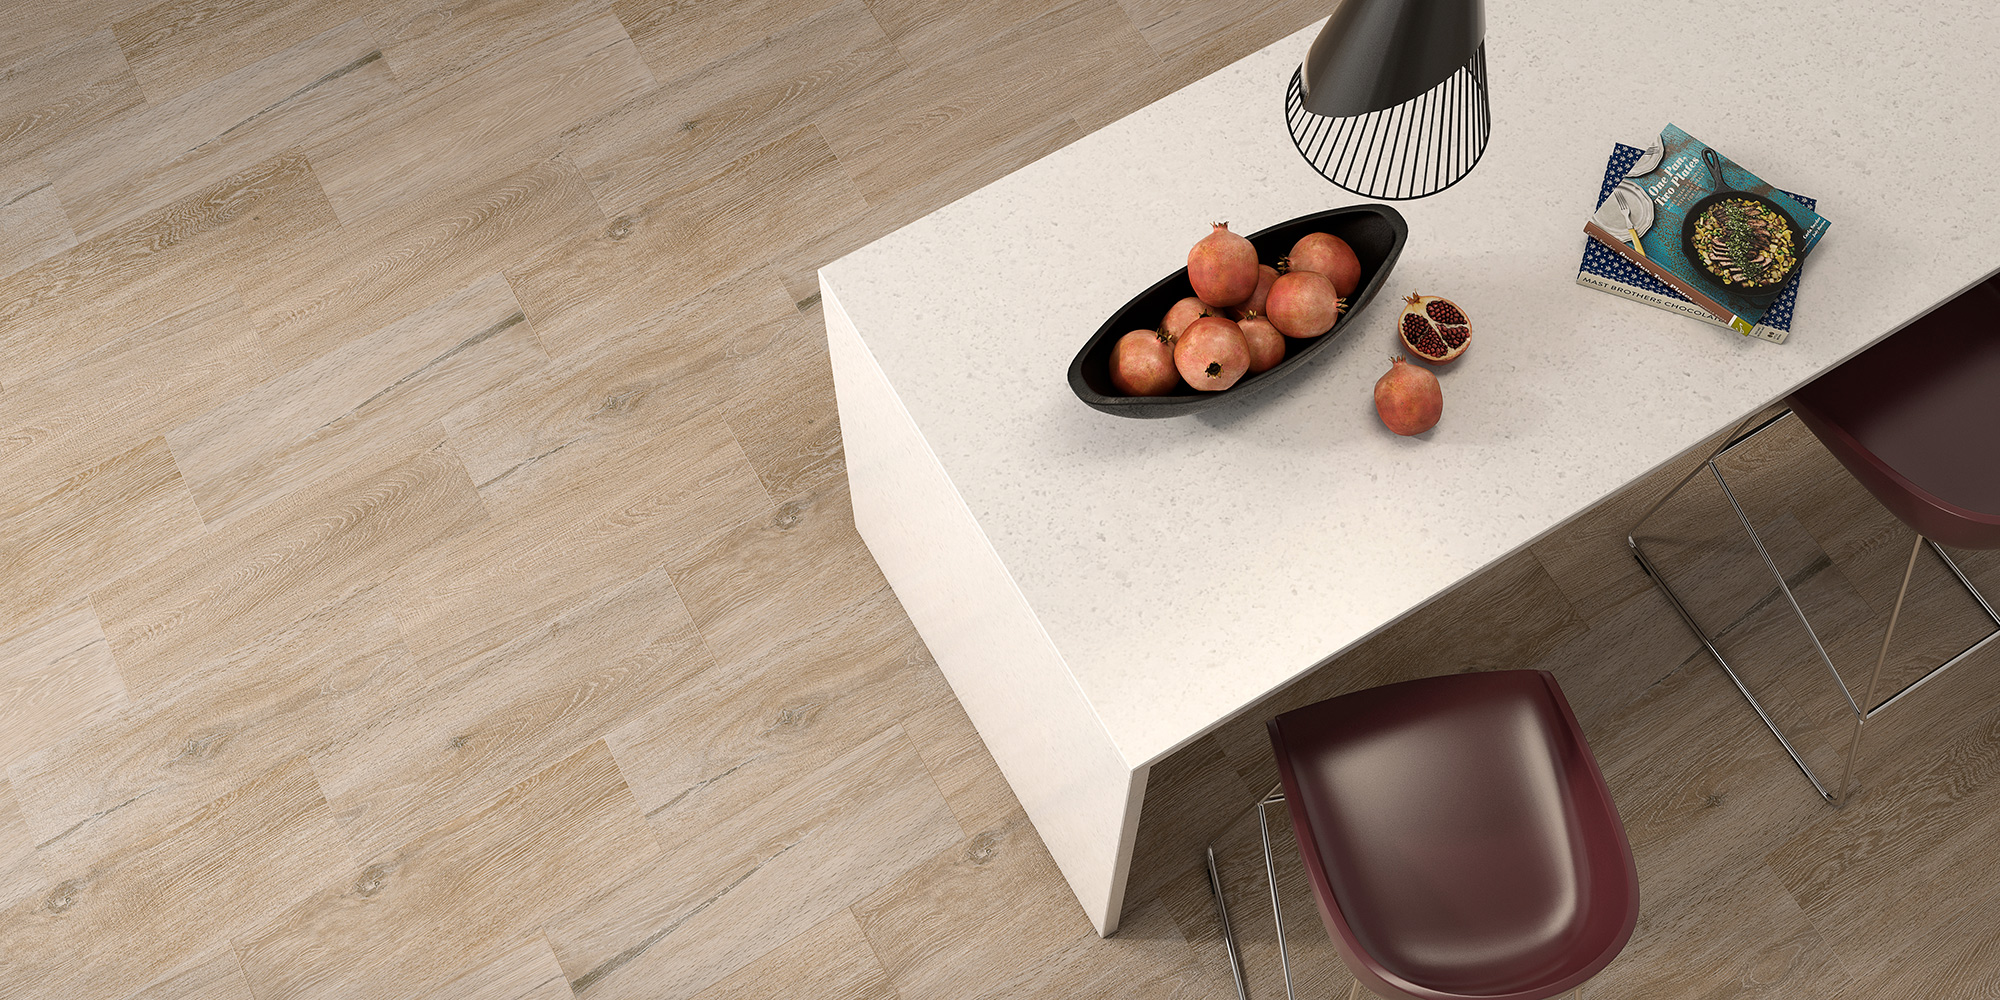 Hudson 22.5x60. Waterproof wood look flooring for bathrooms and kitchens.